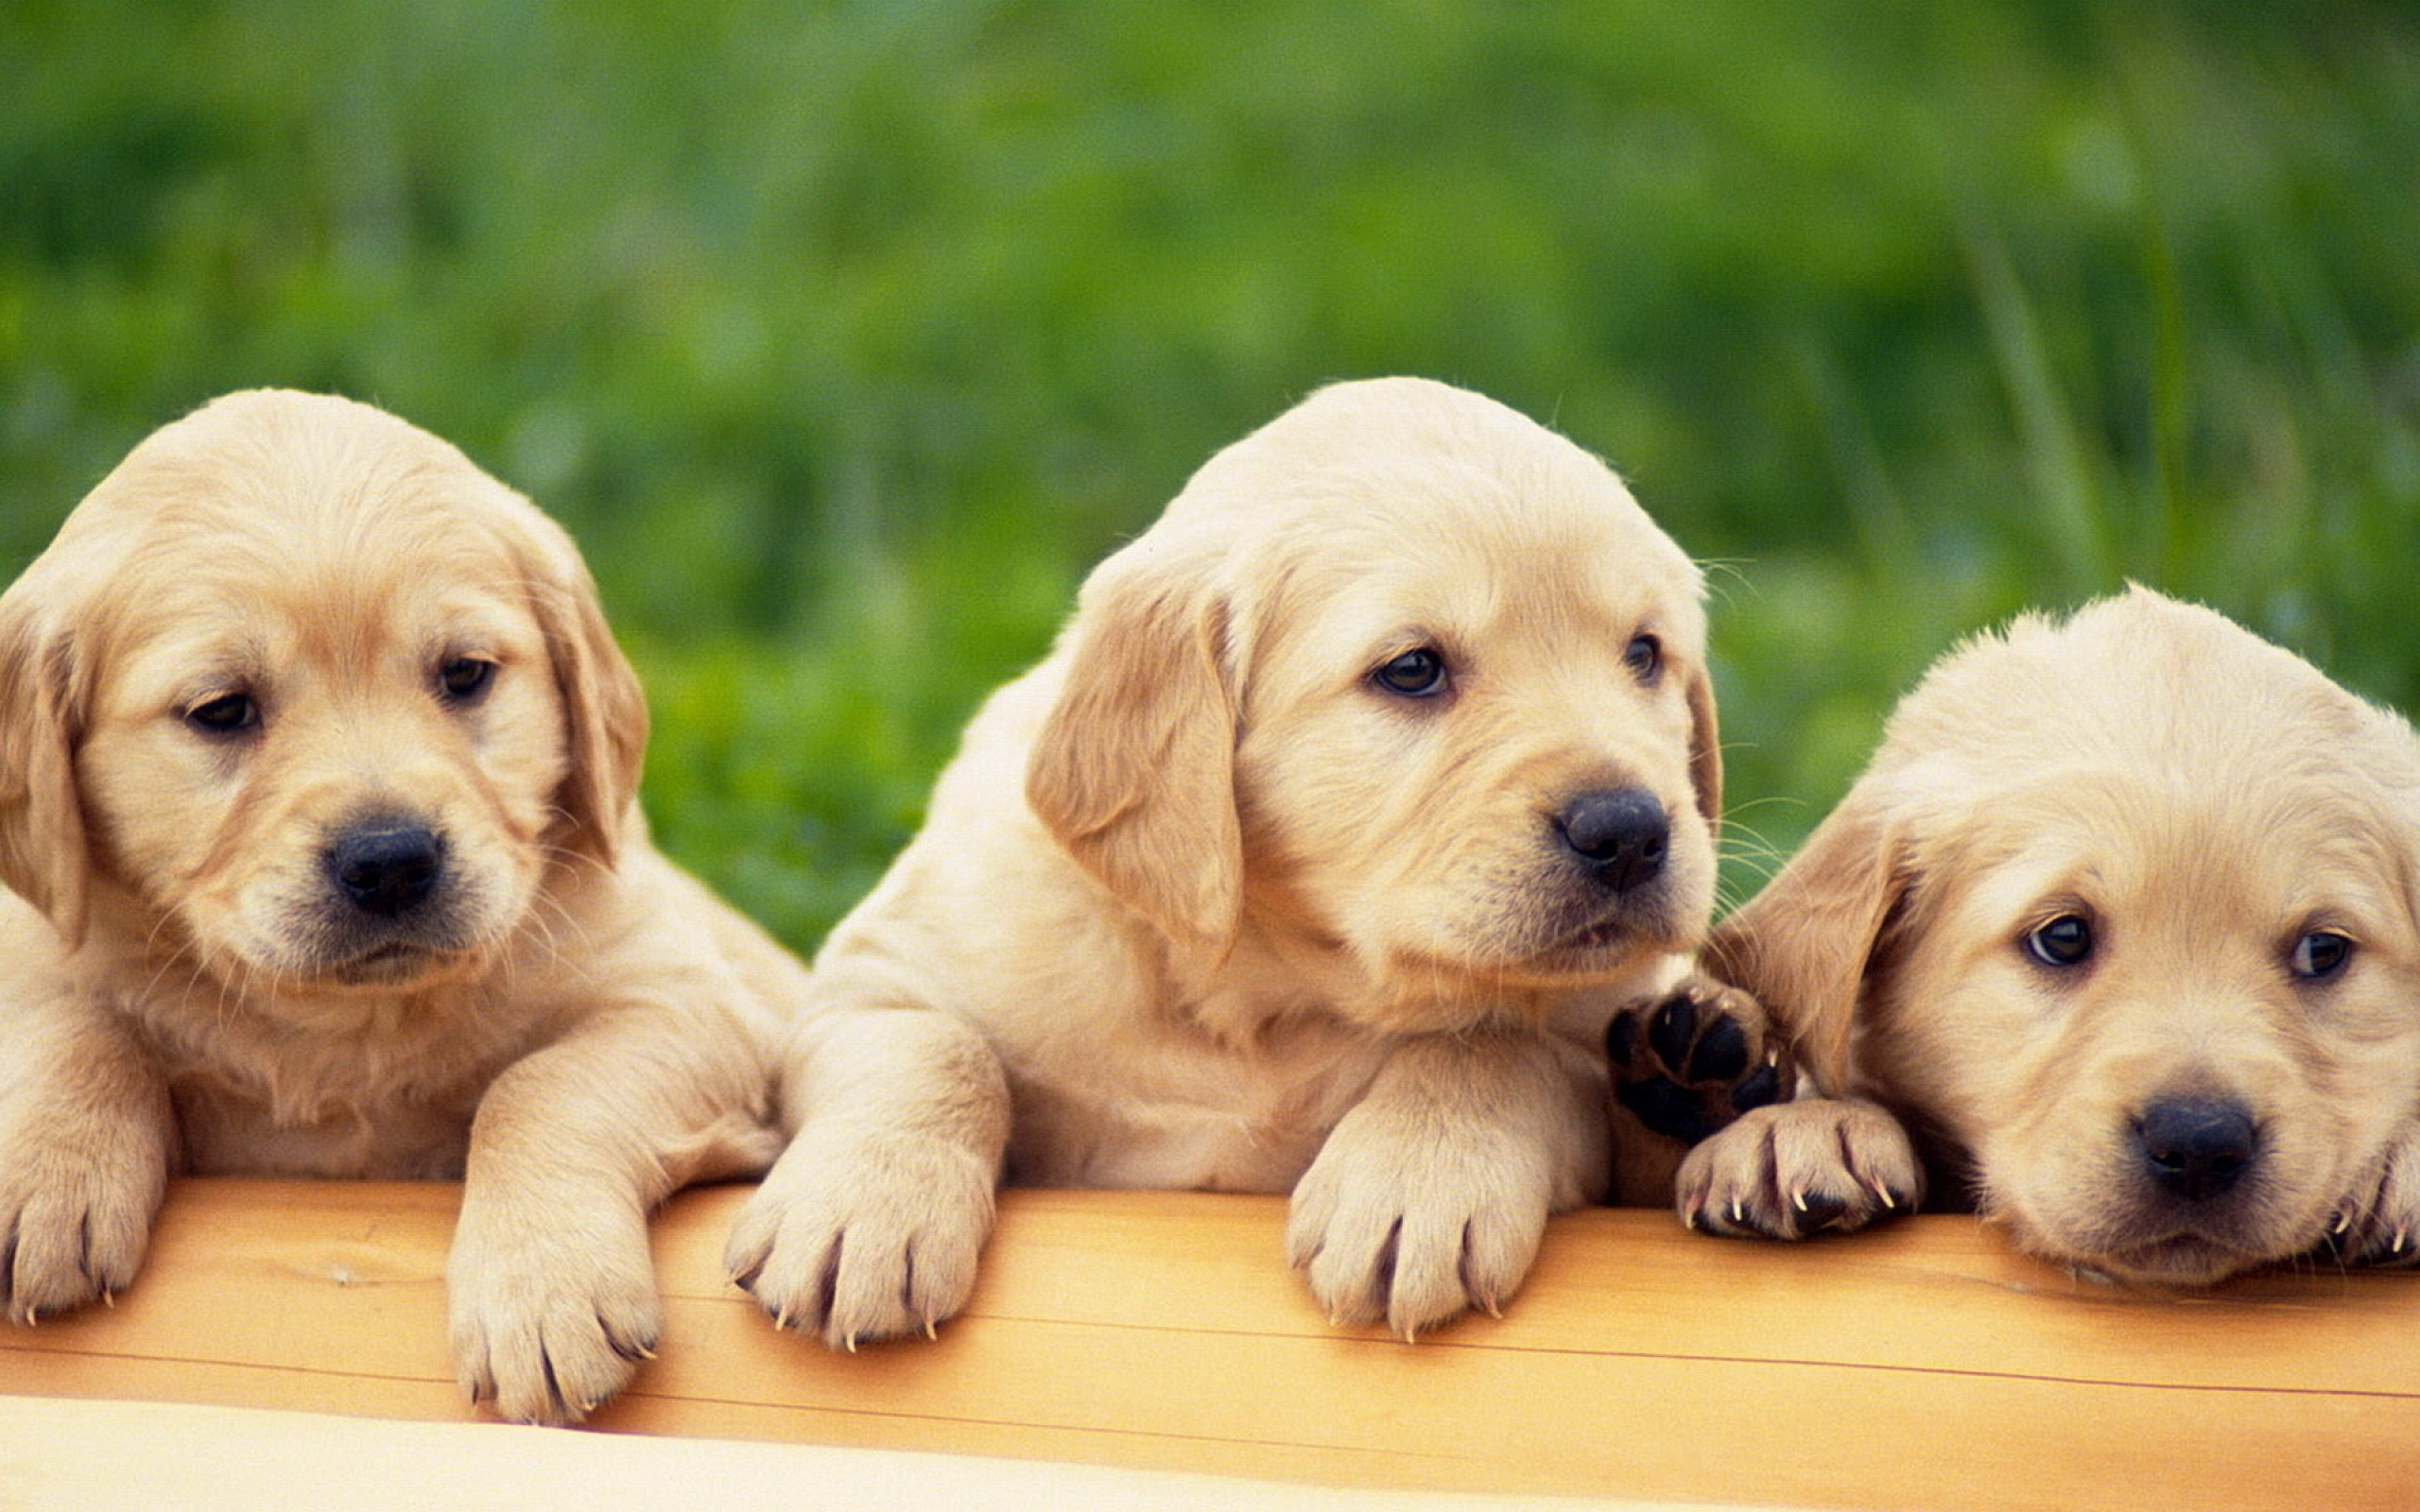 Labrador Puppies Wallpaper   Download Wallpaper Nature 2560x1600